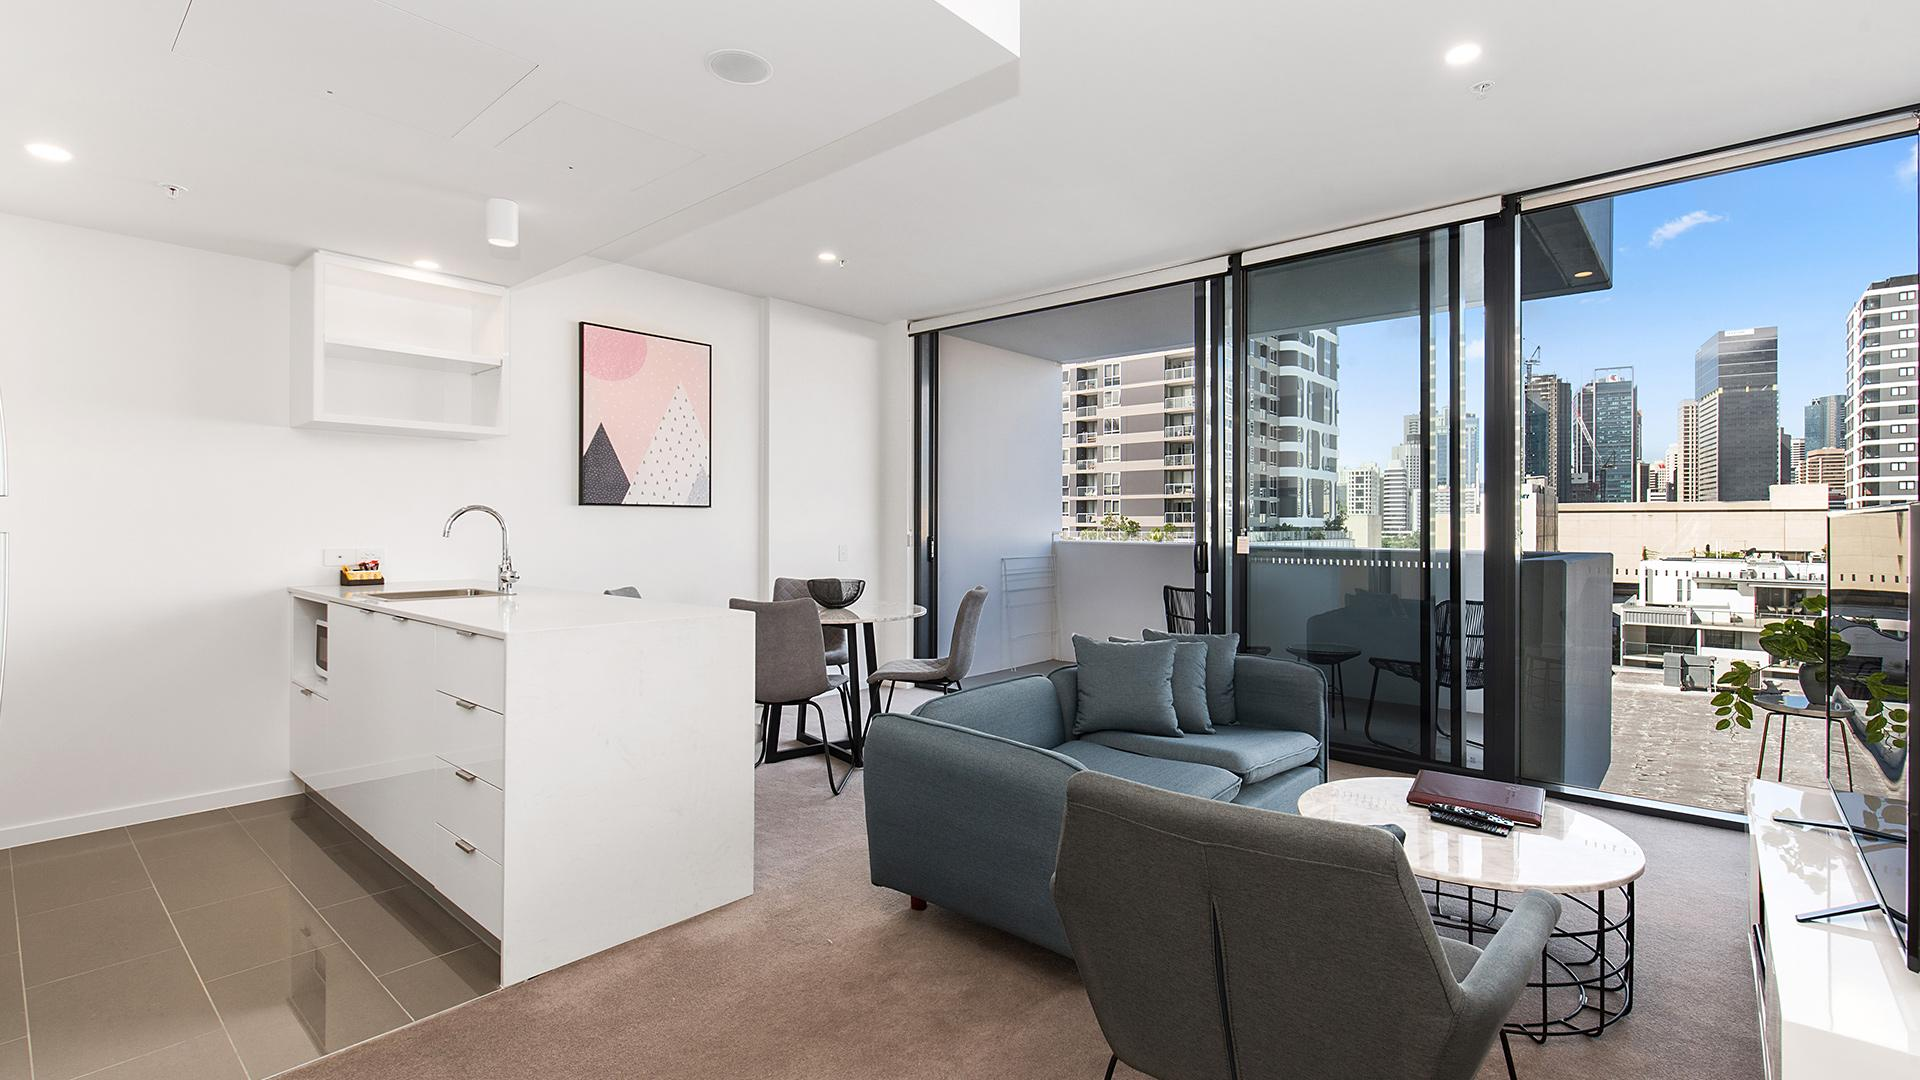 Two-Bedroom Apartment image 1 at Arise Ivy & Eve Apartments by Brisbane City, Queensland, Australia